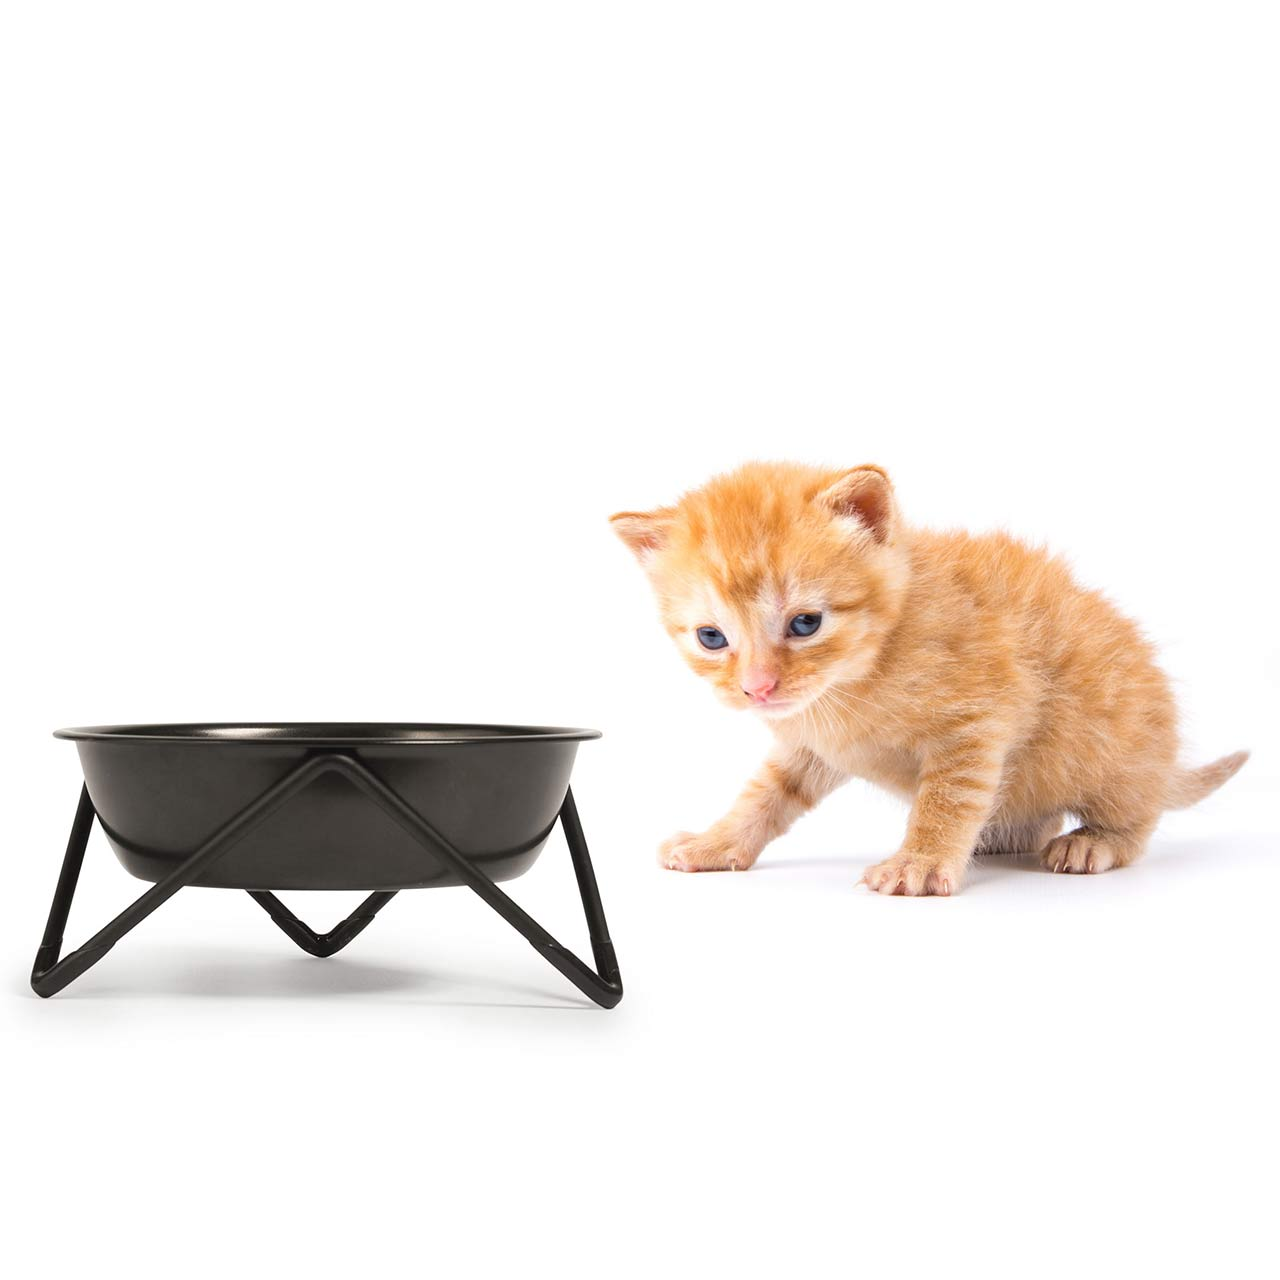 BENDO meow luxe cat dish black on black | the design gift shop